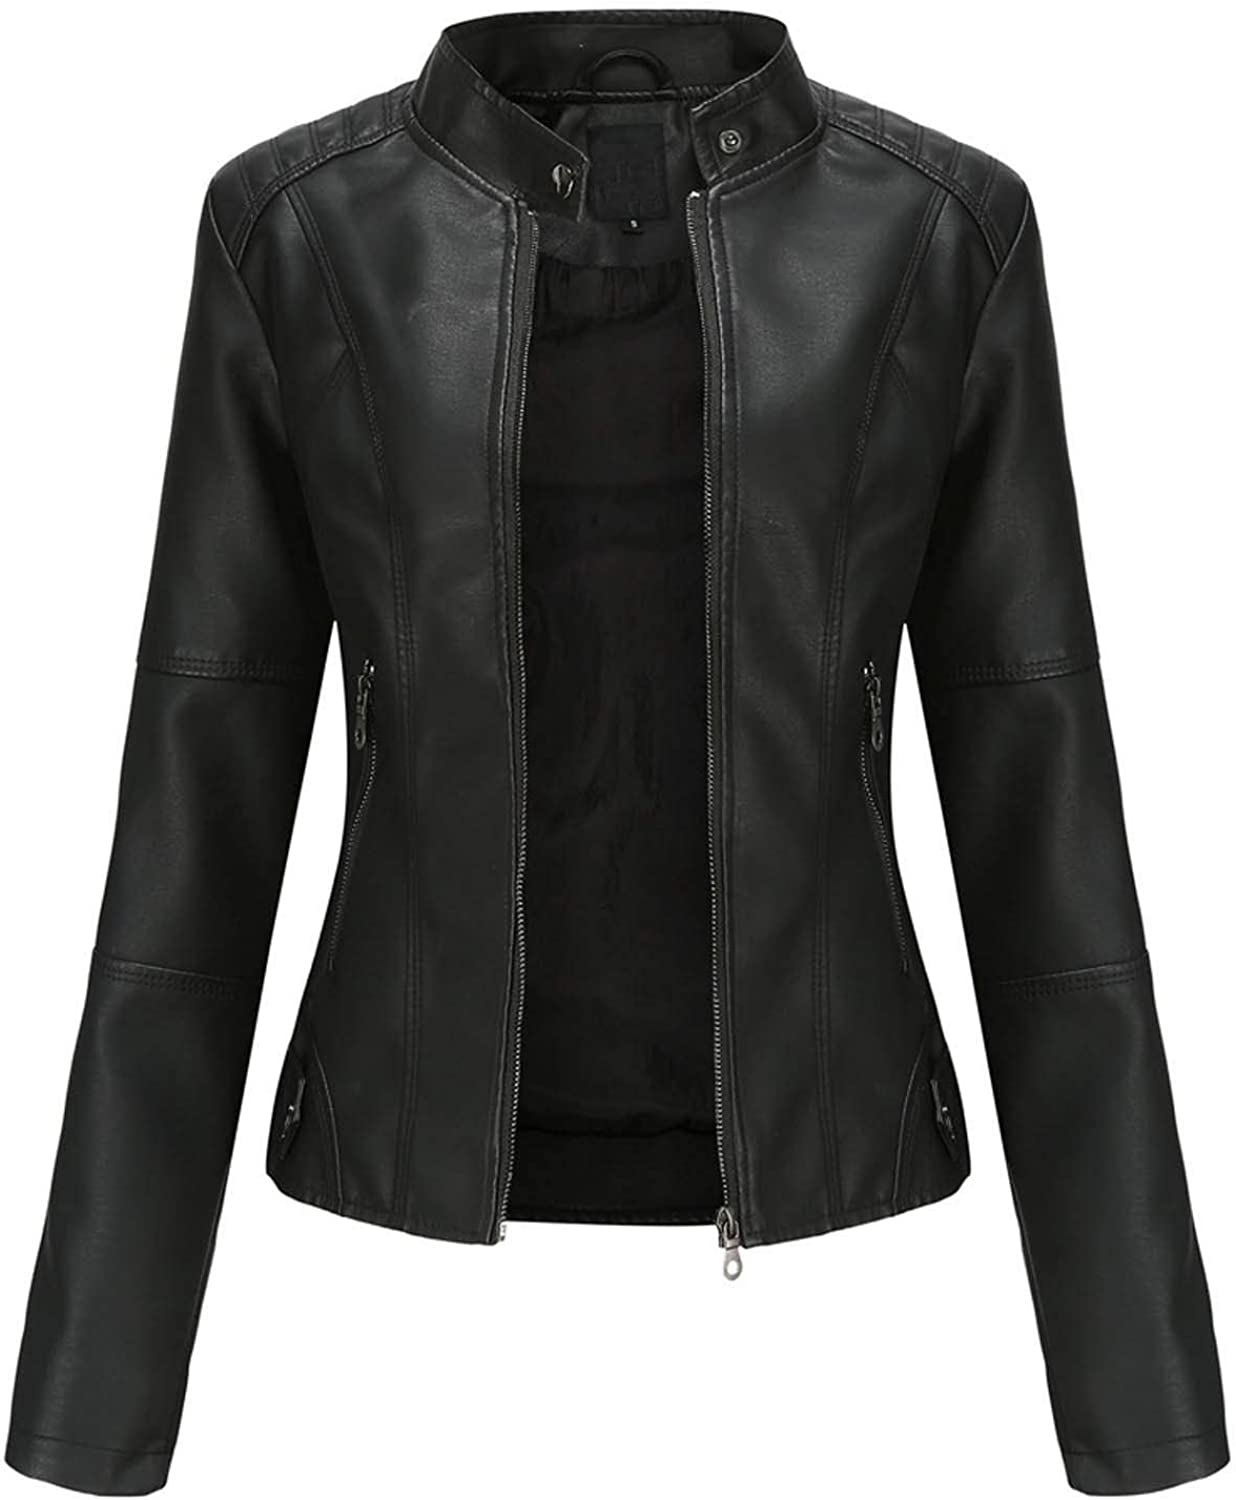 DEATU Faux Leather Jacket Women Motorcycle Fall Clothes Trendy Zip Jackets Slim-Fit Cropped Tops Short Thin Punk Coats